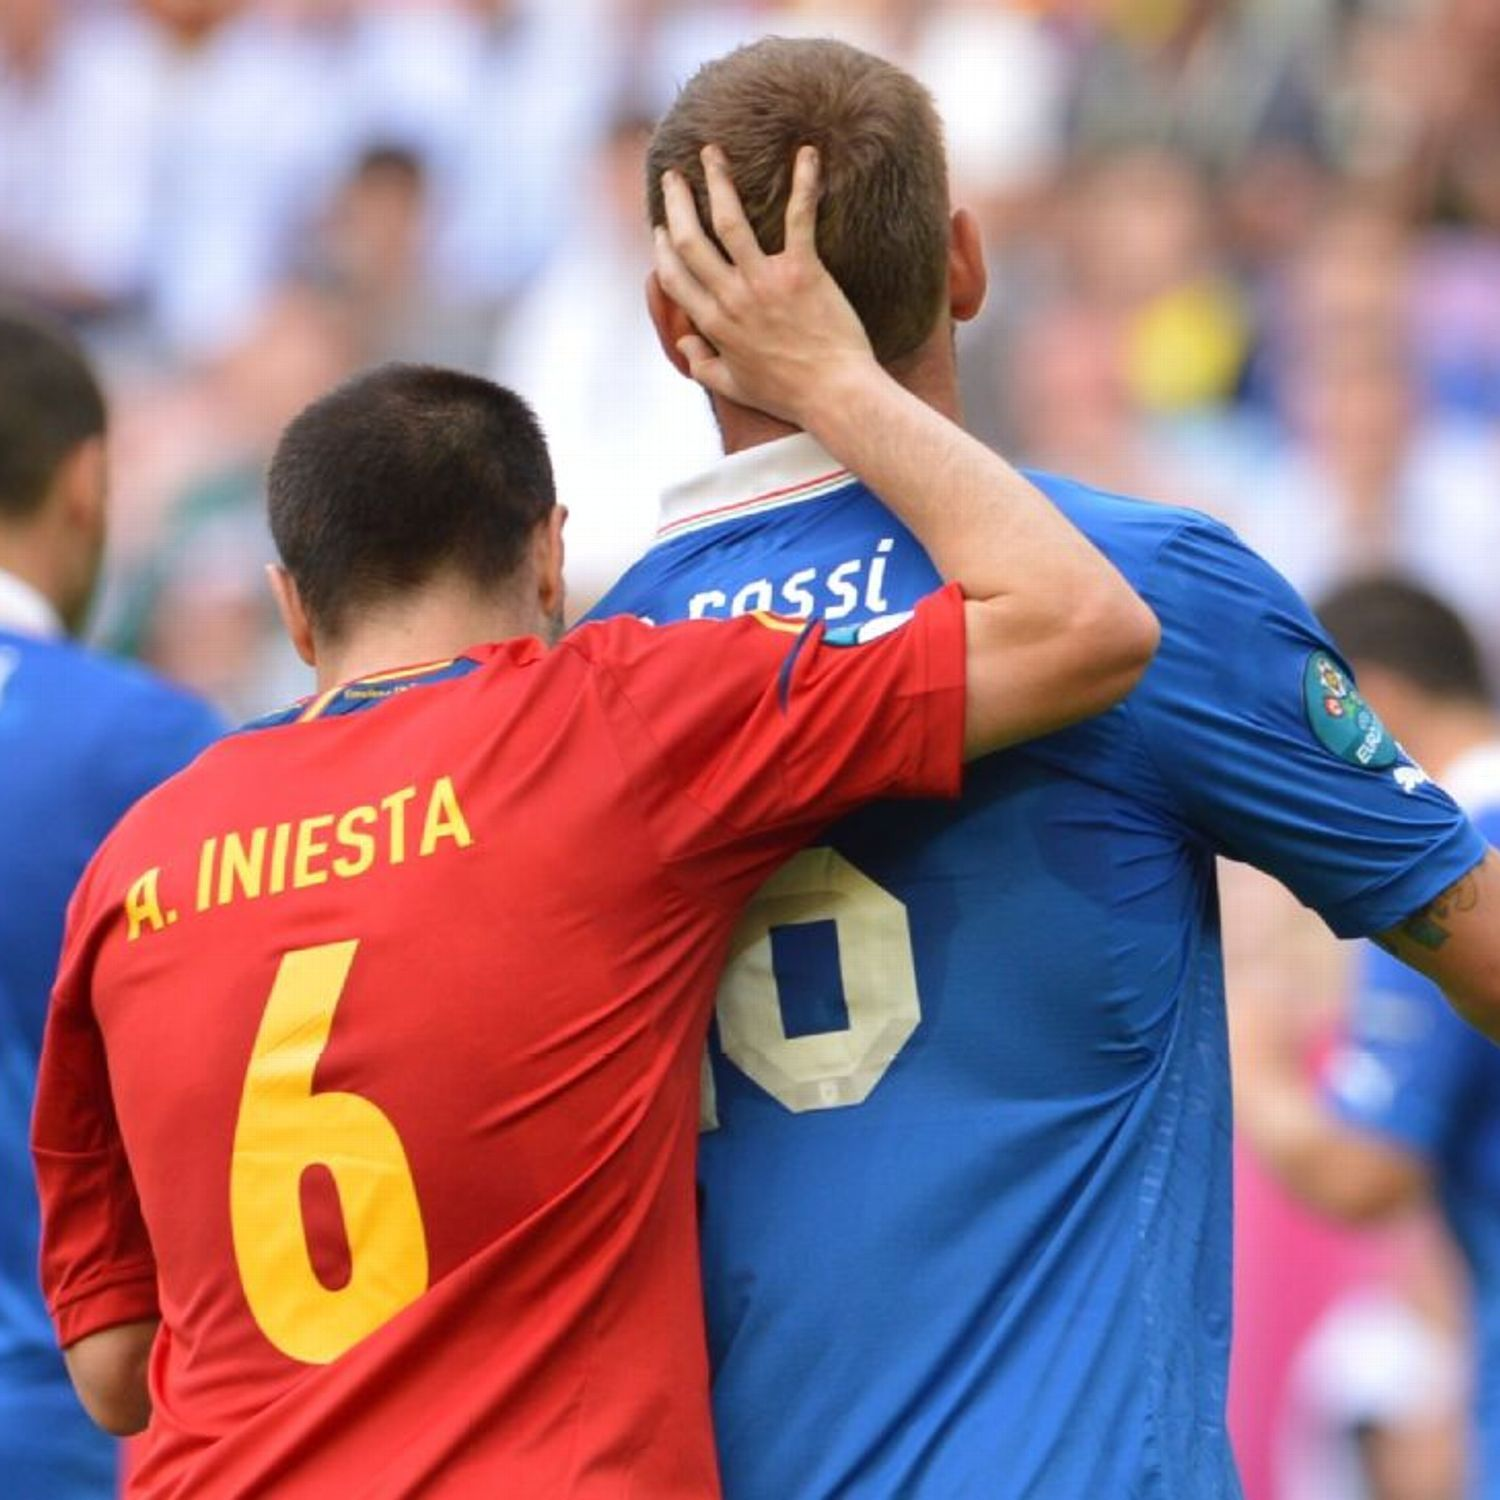 Euro 2016 round of 16: Italy vs. Spain live commentary